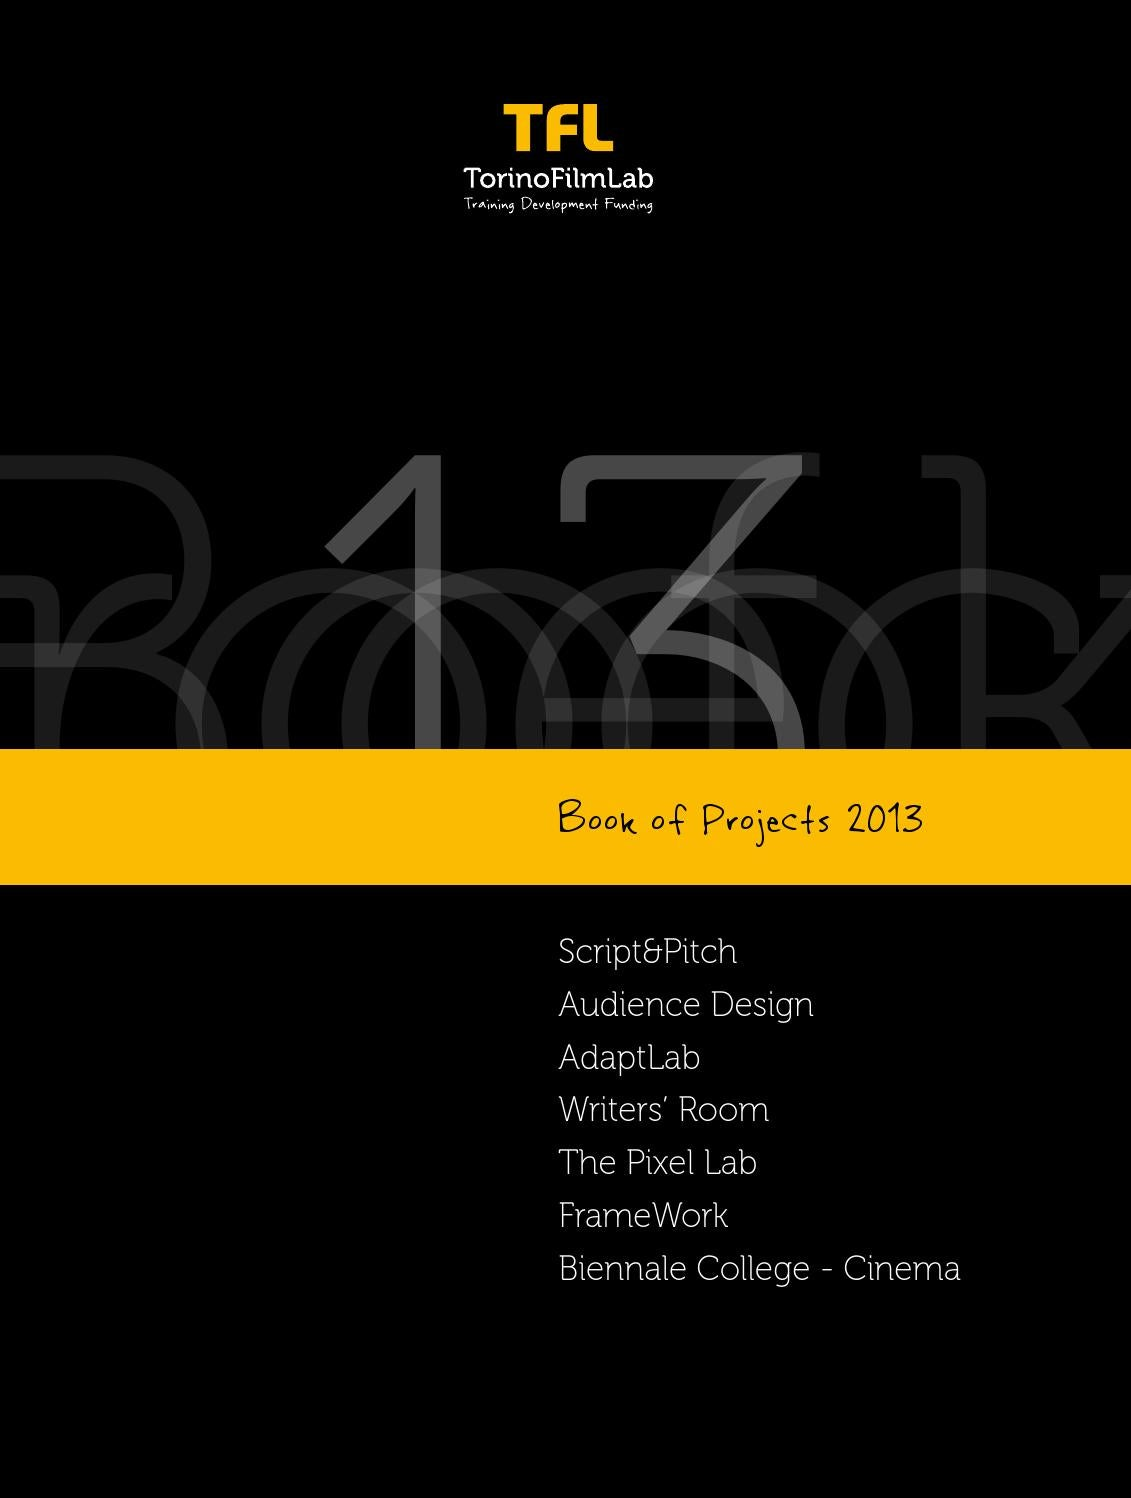 TorinoFilmLab Book of Projects 2013 by TorinoFilmLab - issuu